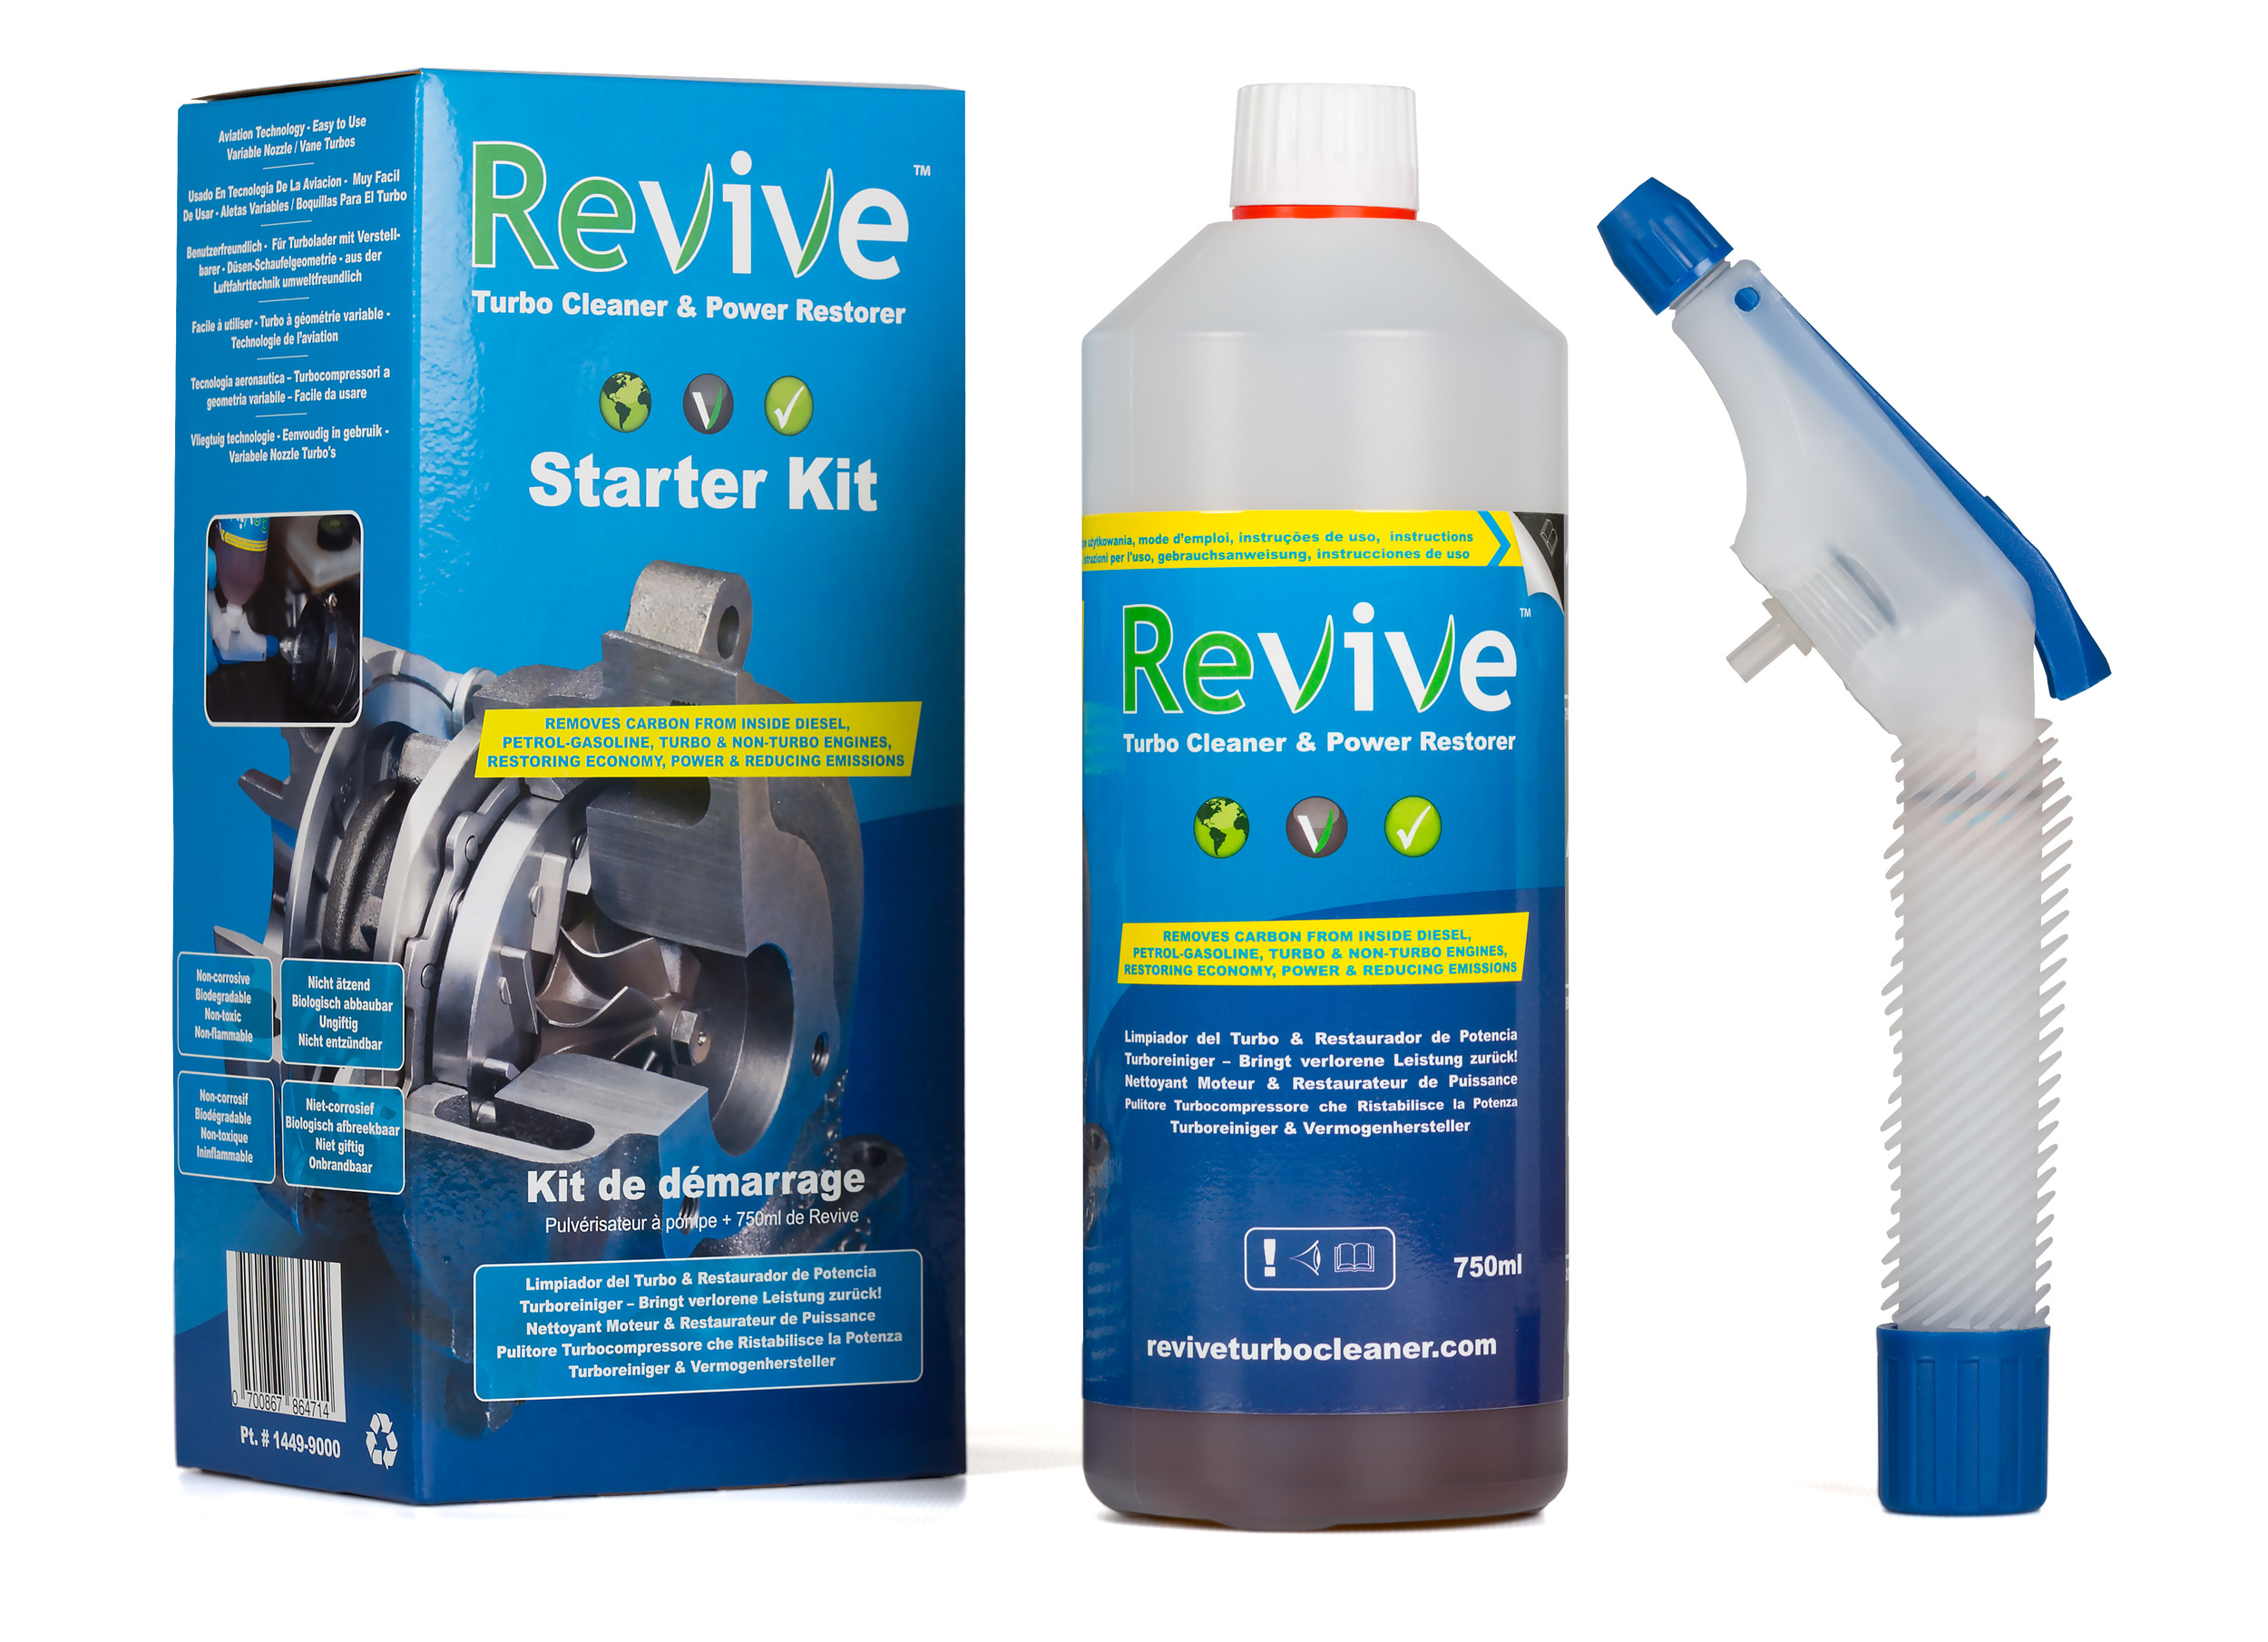 Revive Turbo Cleaner Starter Kit for engines up to 5.0 Liters Capacity